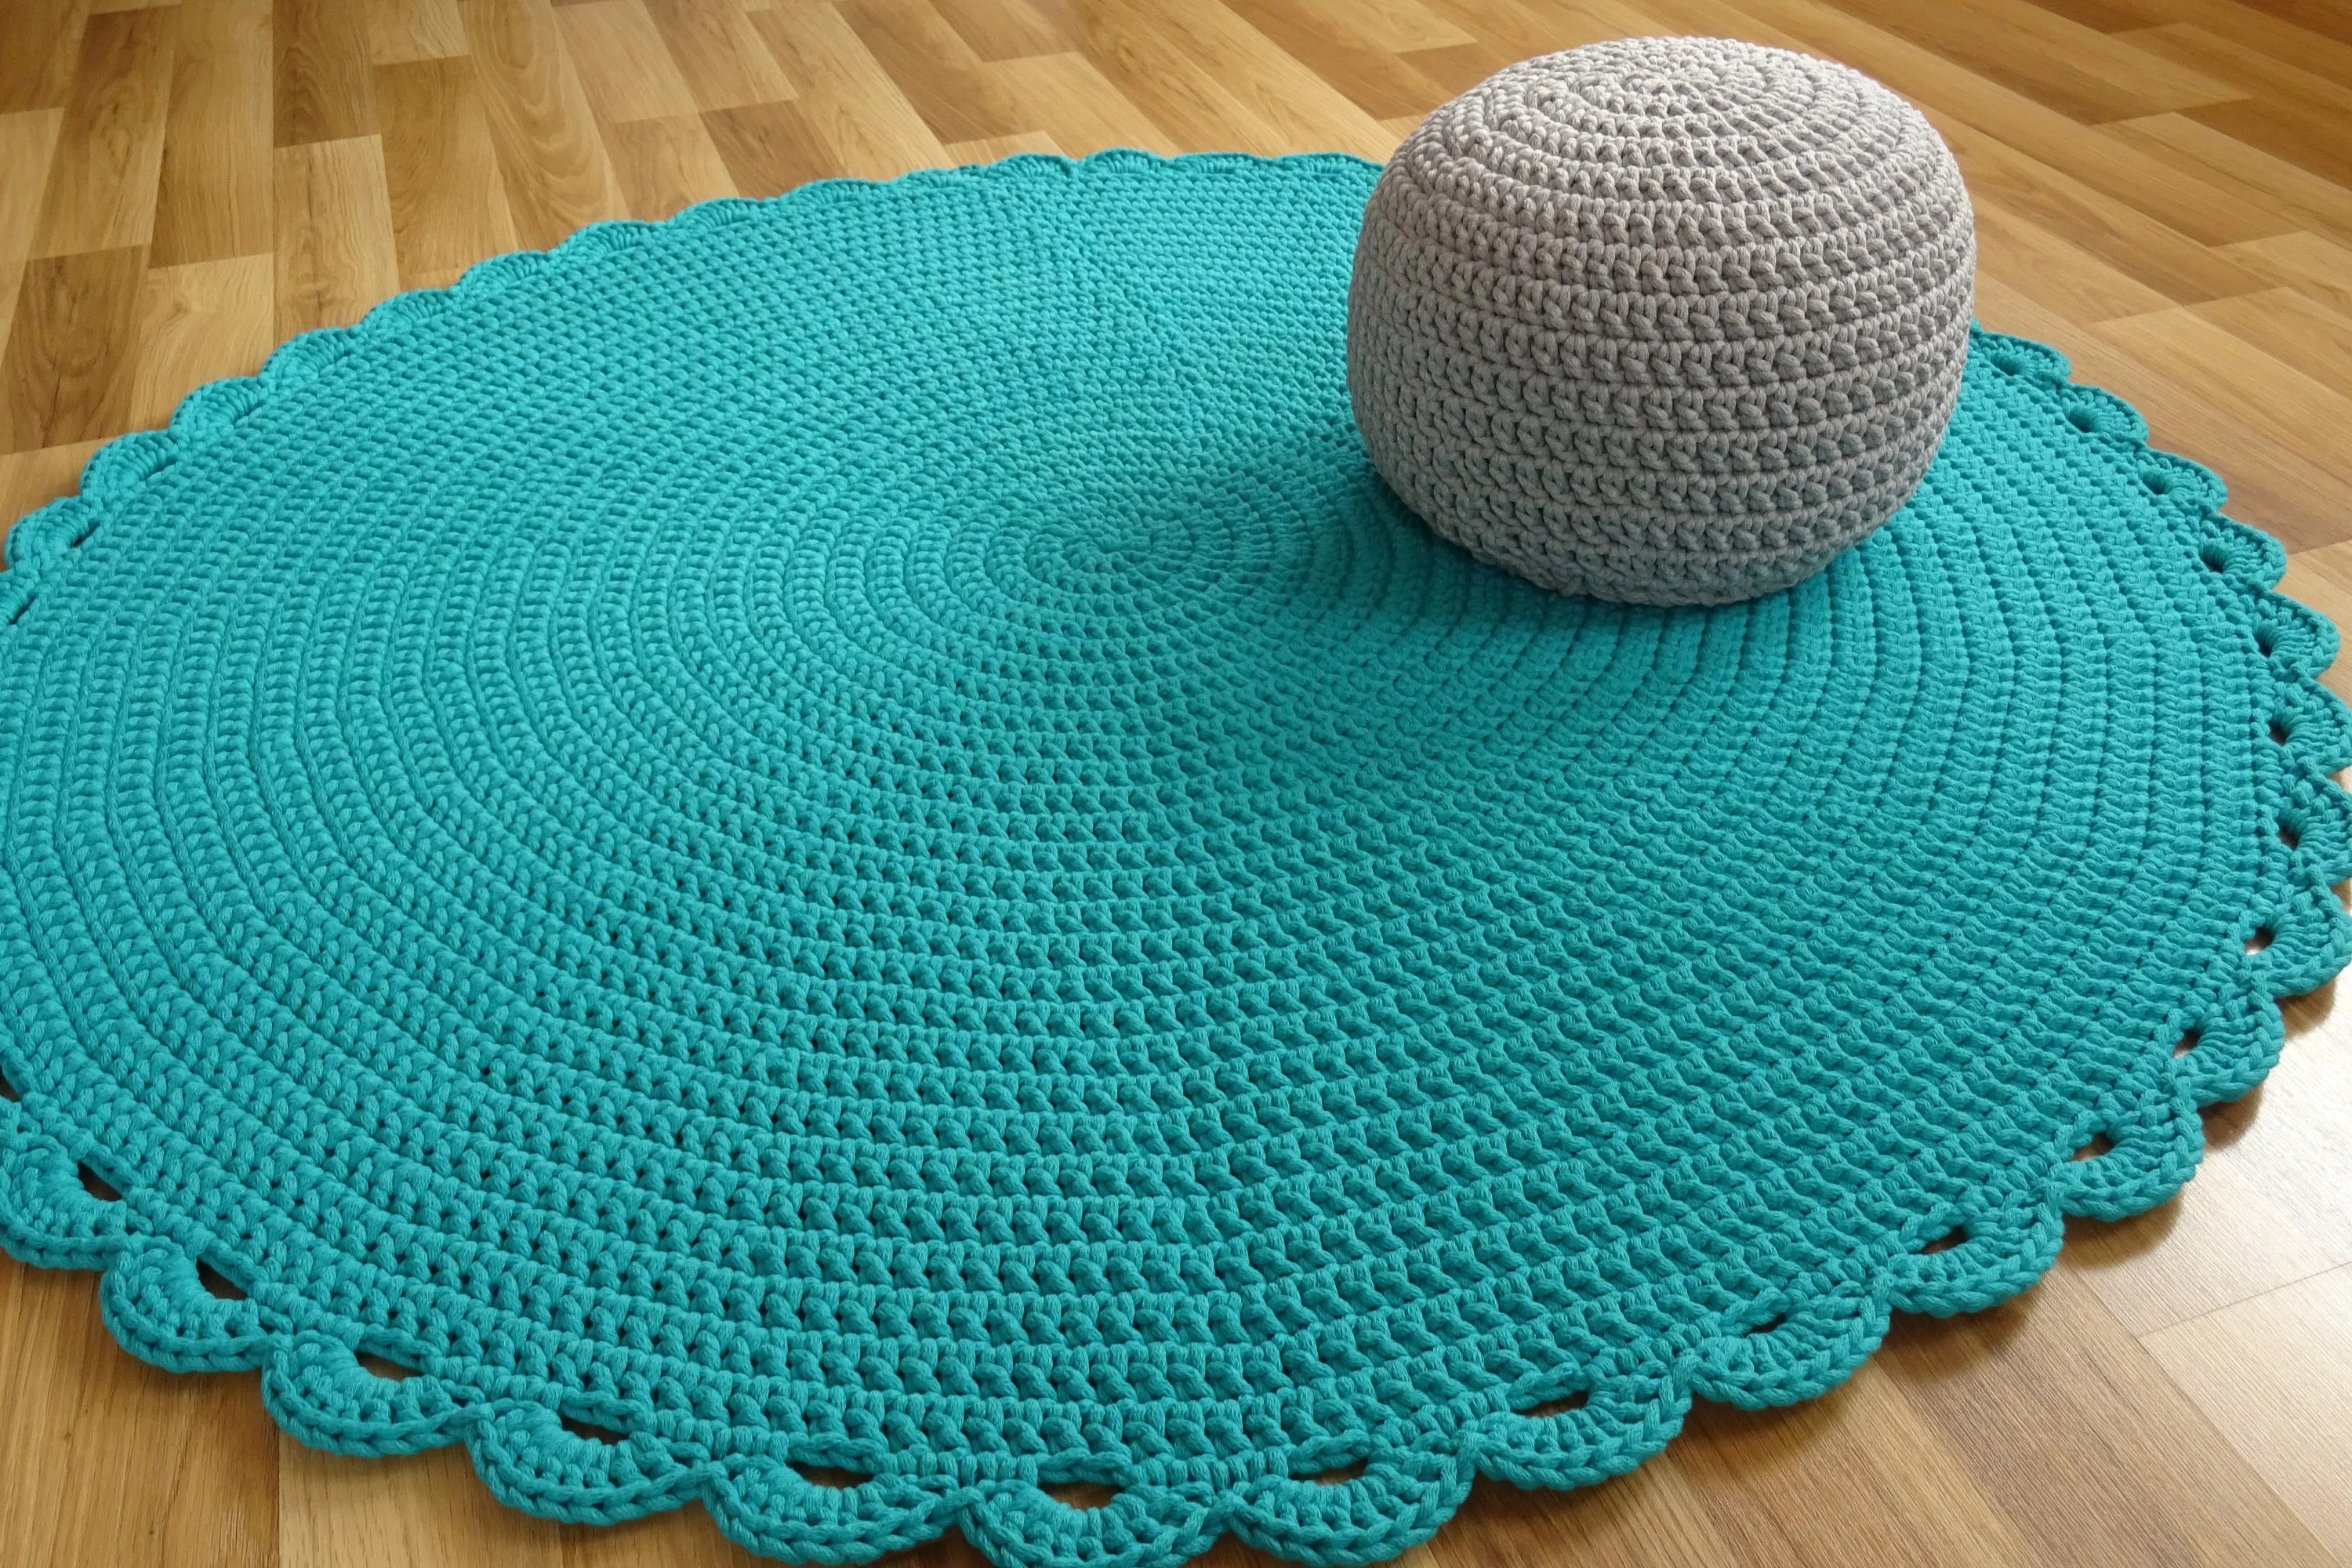 Pouf Sitzkissen Pouf Round Ottoman Scandinavian Baby Boy Floor Pillows Footstool Crochet Pouf Nursery Decor Kids Pouf Stuffed Pouf Sitzkissen Siege